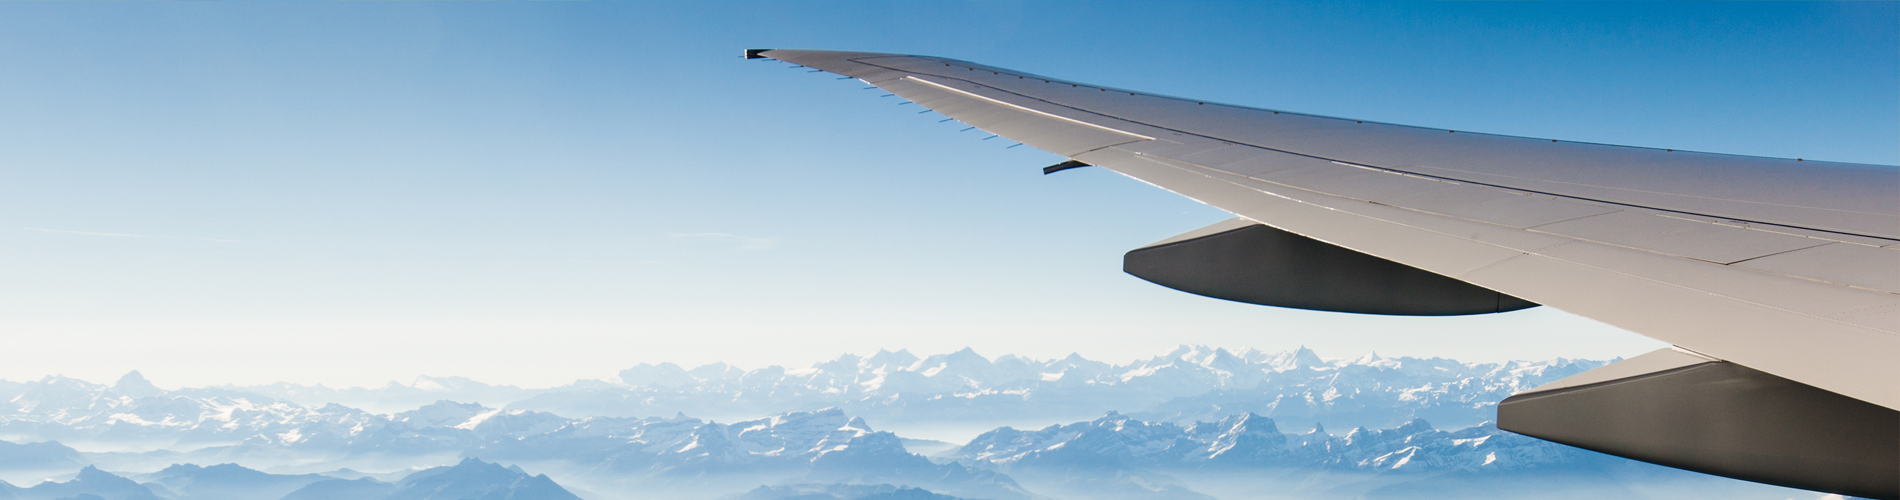 Travel Plane background mountains 1900x500